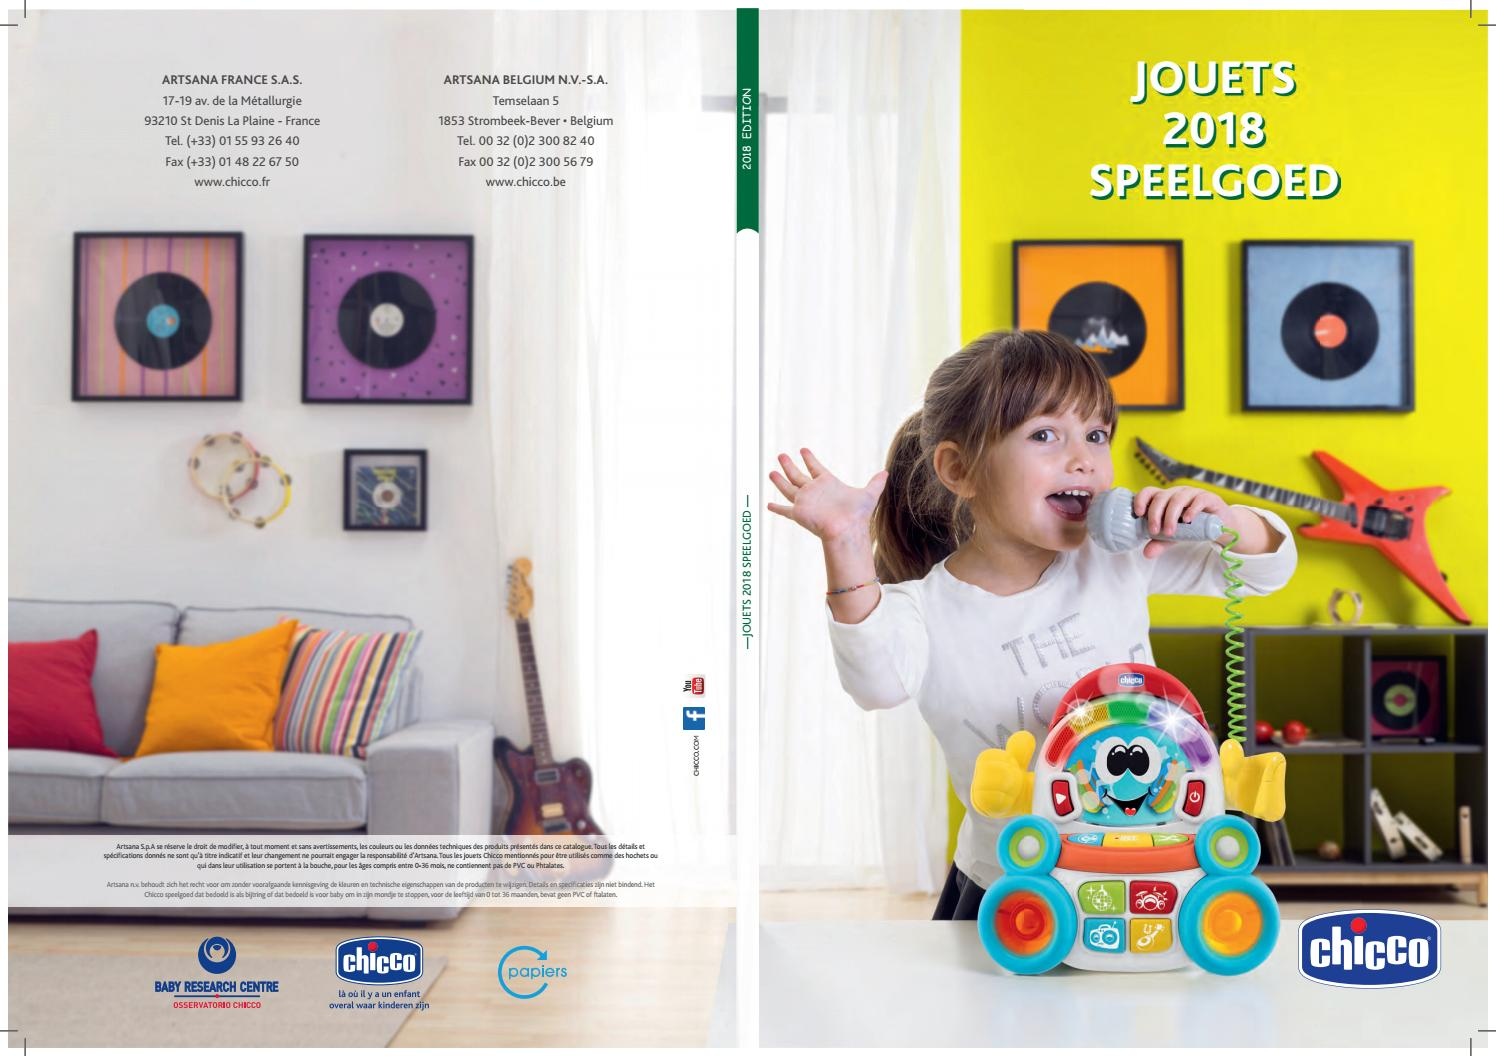 Catalogue Luxembourg Issuu Babycenter 2018 Ip Frnl Chicco Toys By DY9WHE2I